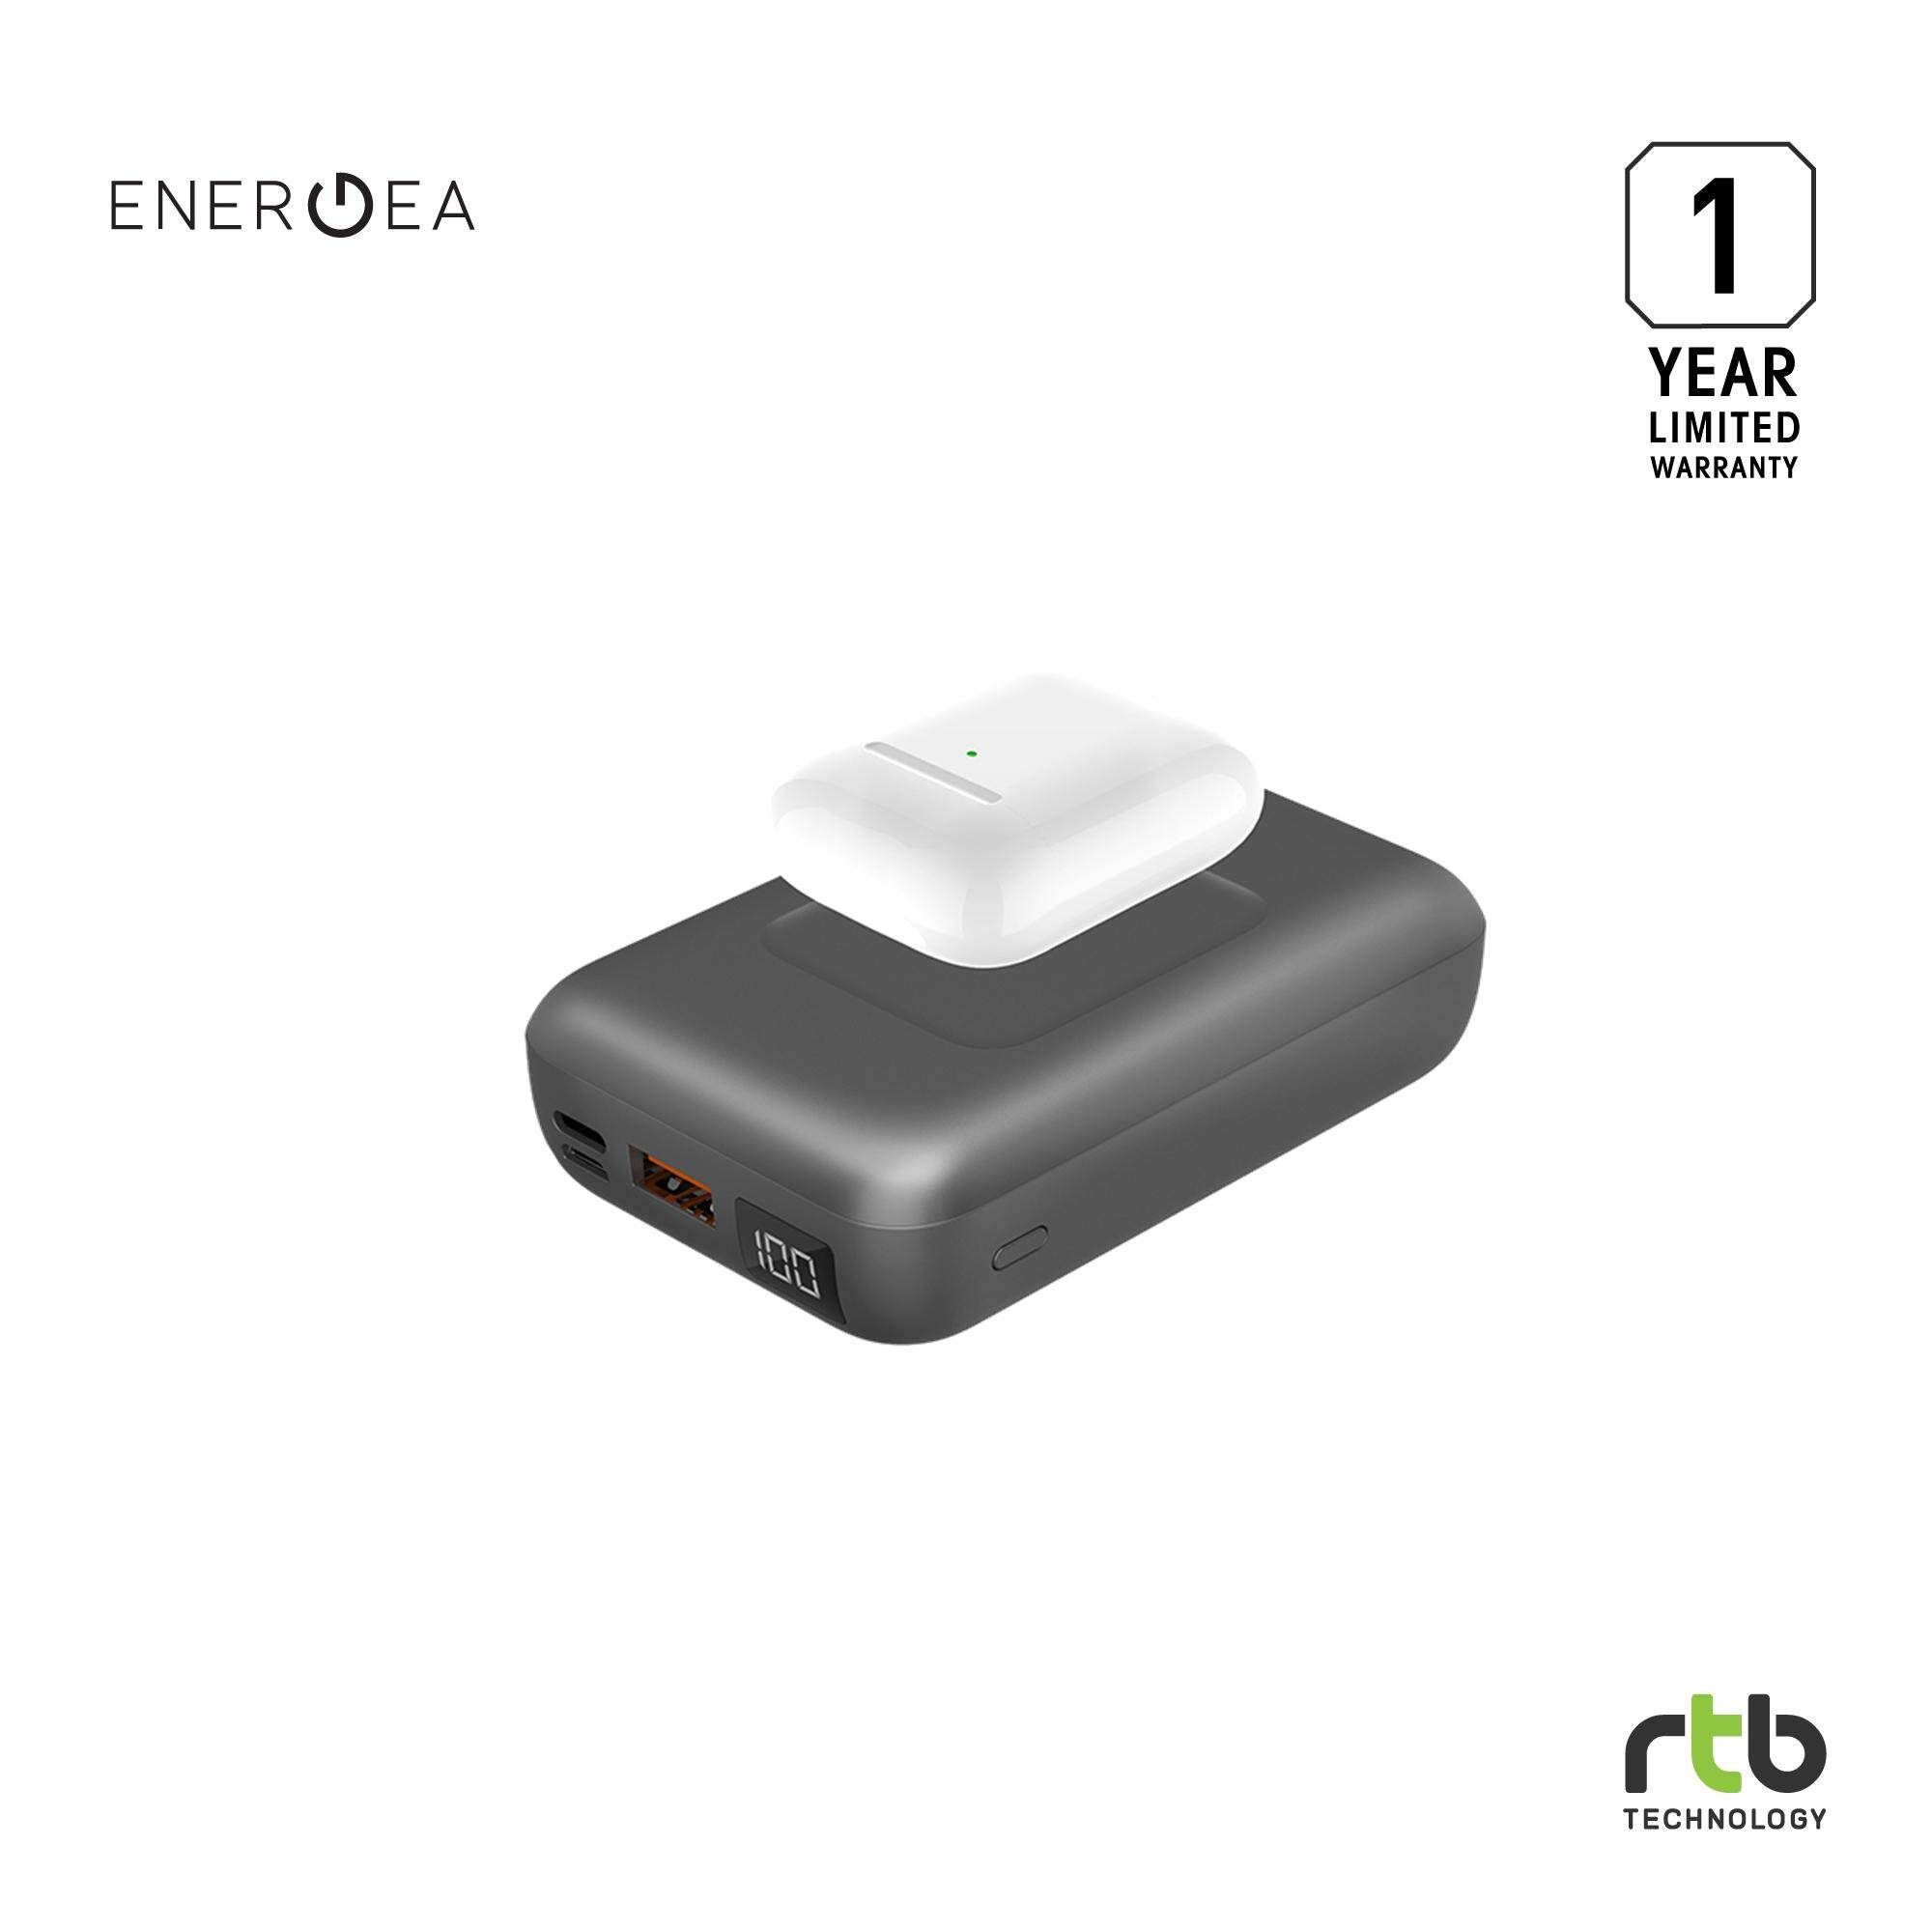 Energea Power Bank รุ่น Compac Wireless Pd 18w 10000mah - Gunmetal.